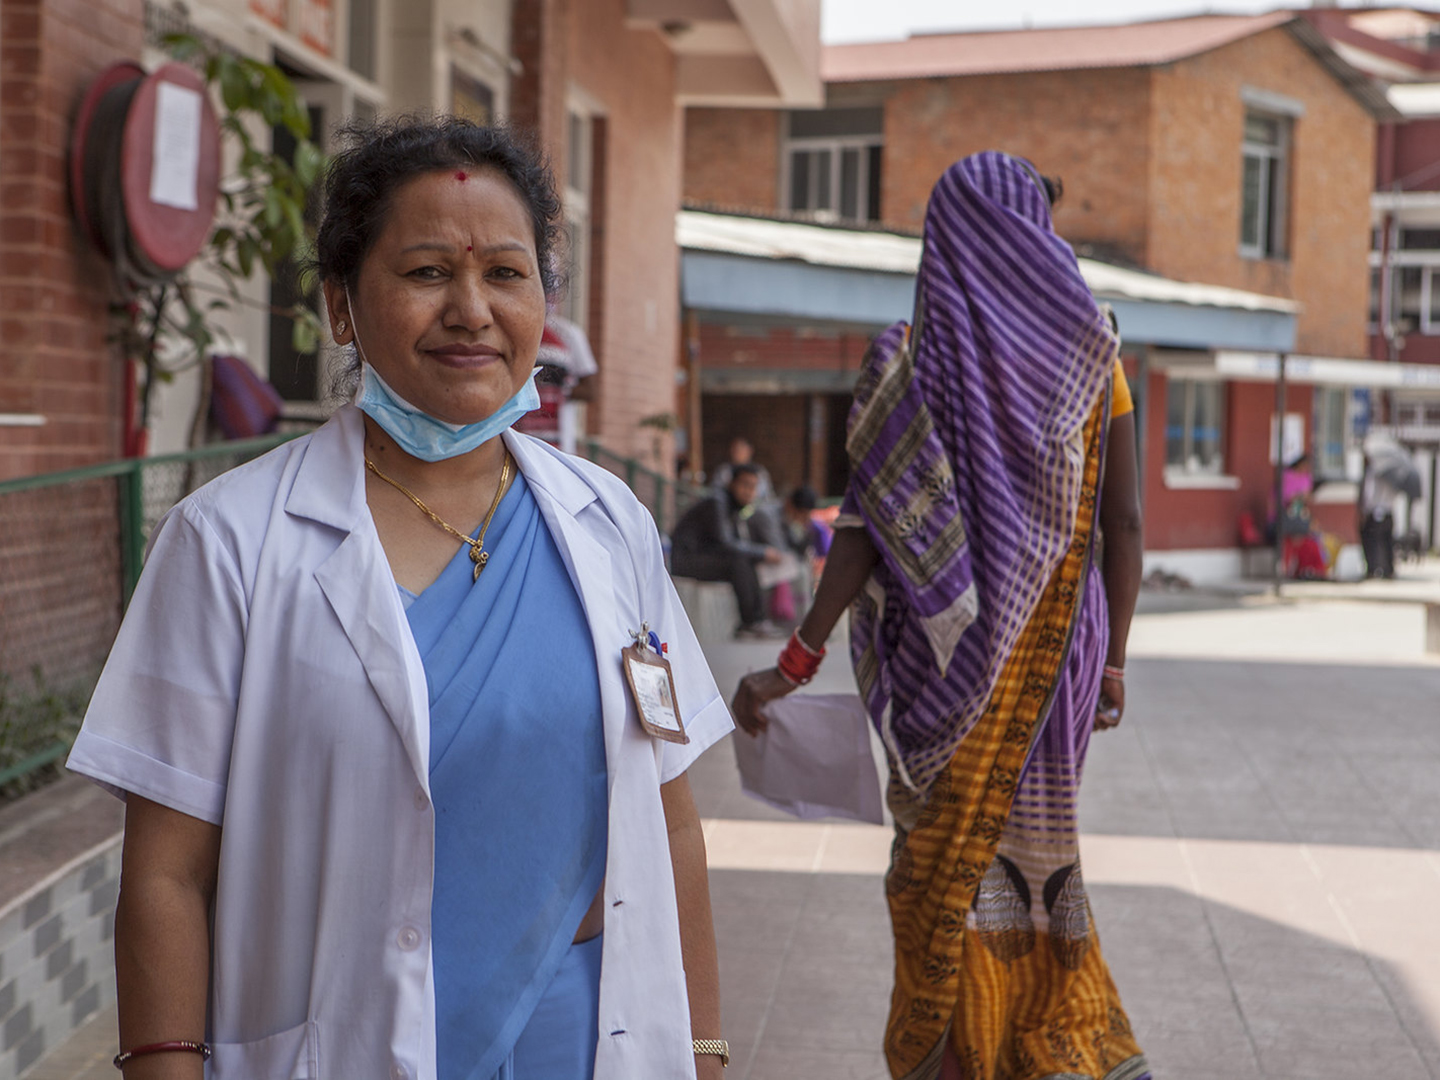 USAID nursing director smiling with mask below her face and a woman walking behind her (Kashish Das Shrestha for USAID)